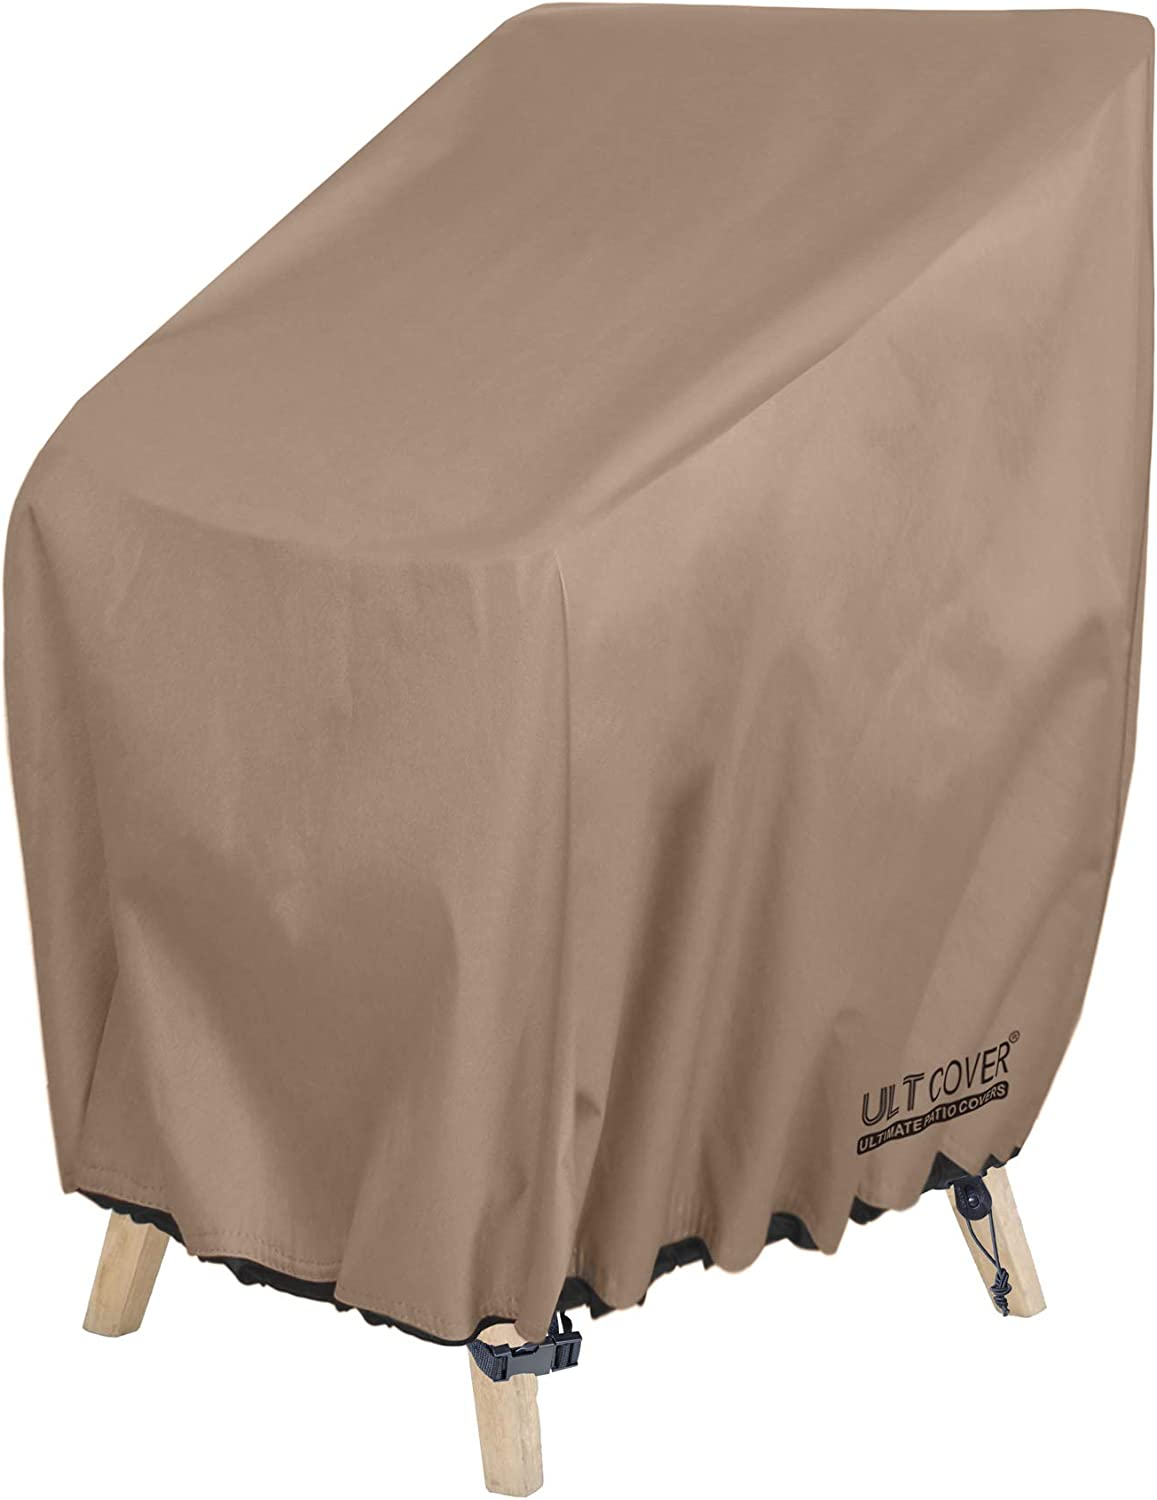 ULTCOVER Stackable Patio Chair Cover – Waterproof Outdoor Stack of Chairs Cover Fits Up to 26L x 34W x 45H inches